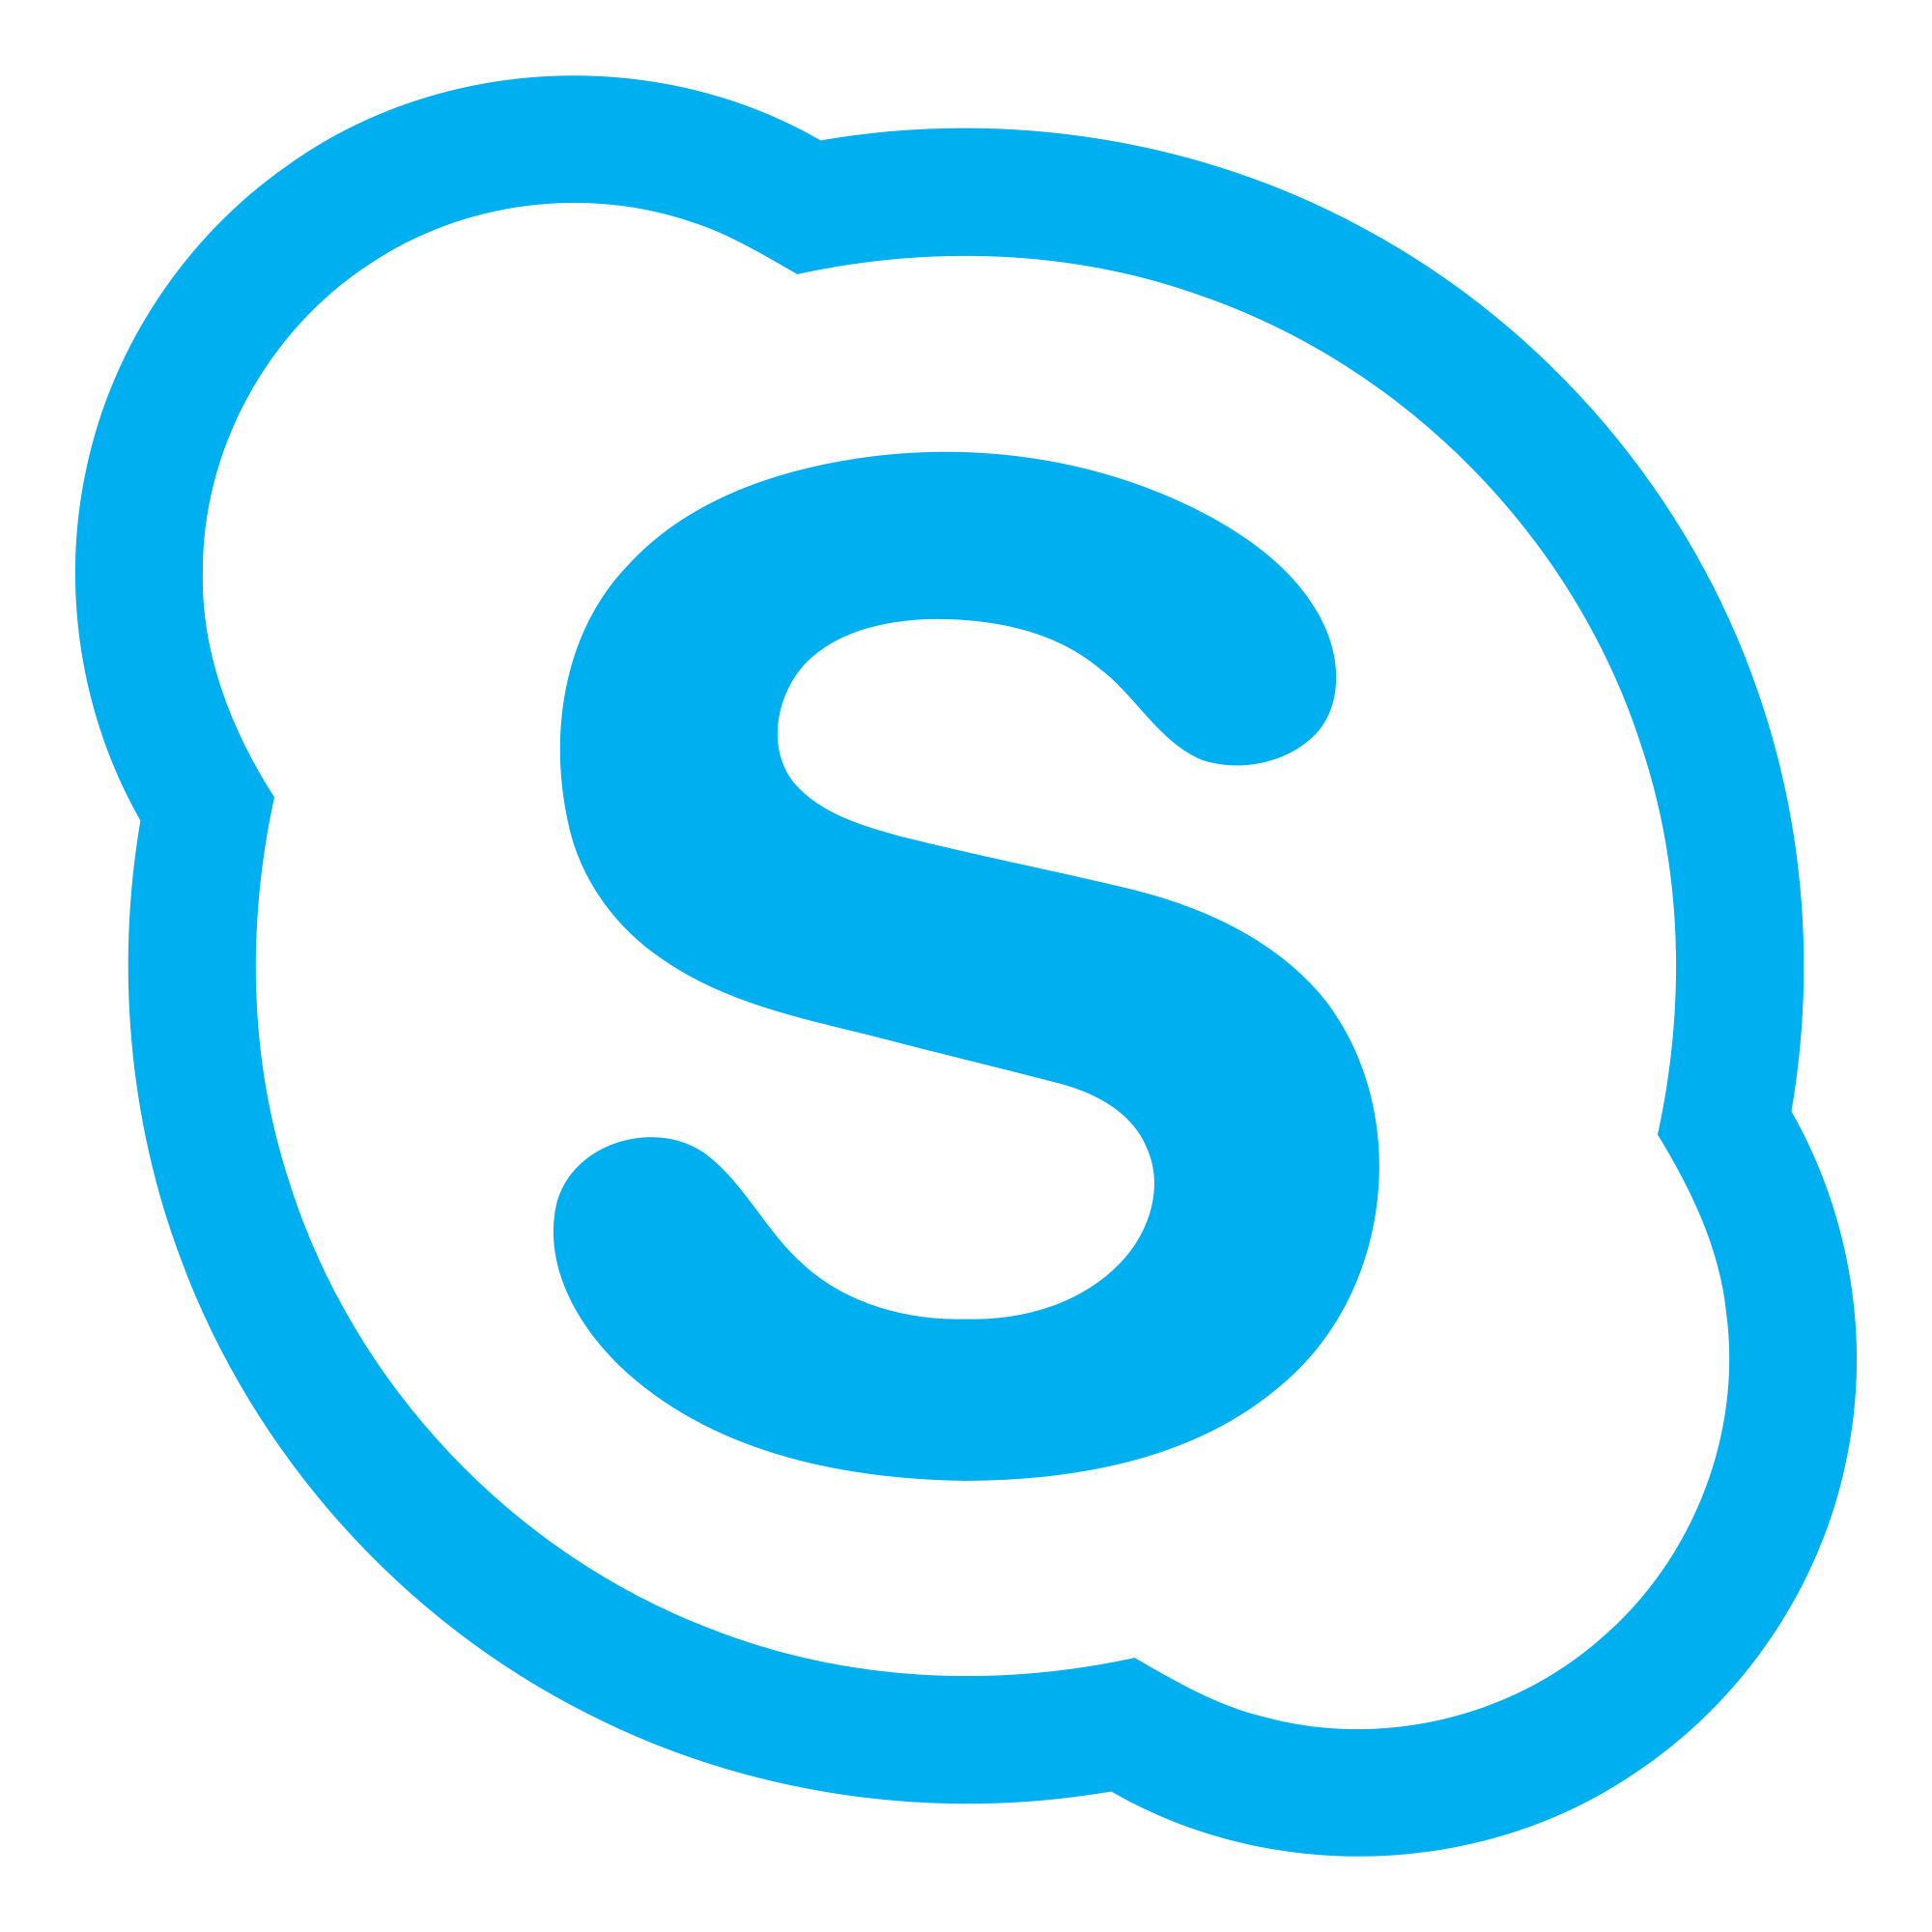 skype logo, skype for business office uwm #19870